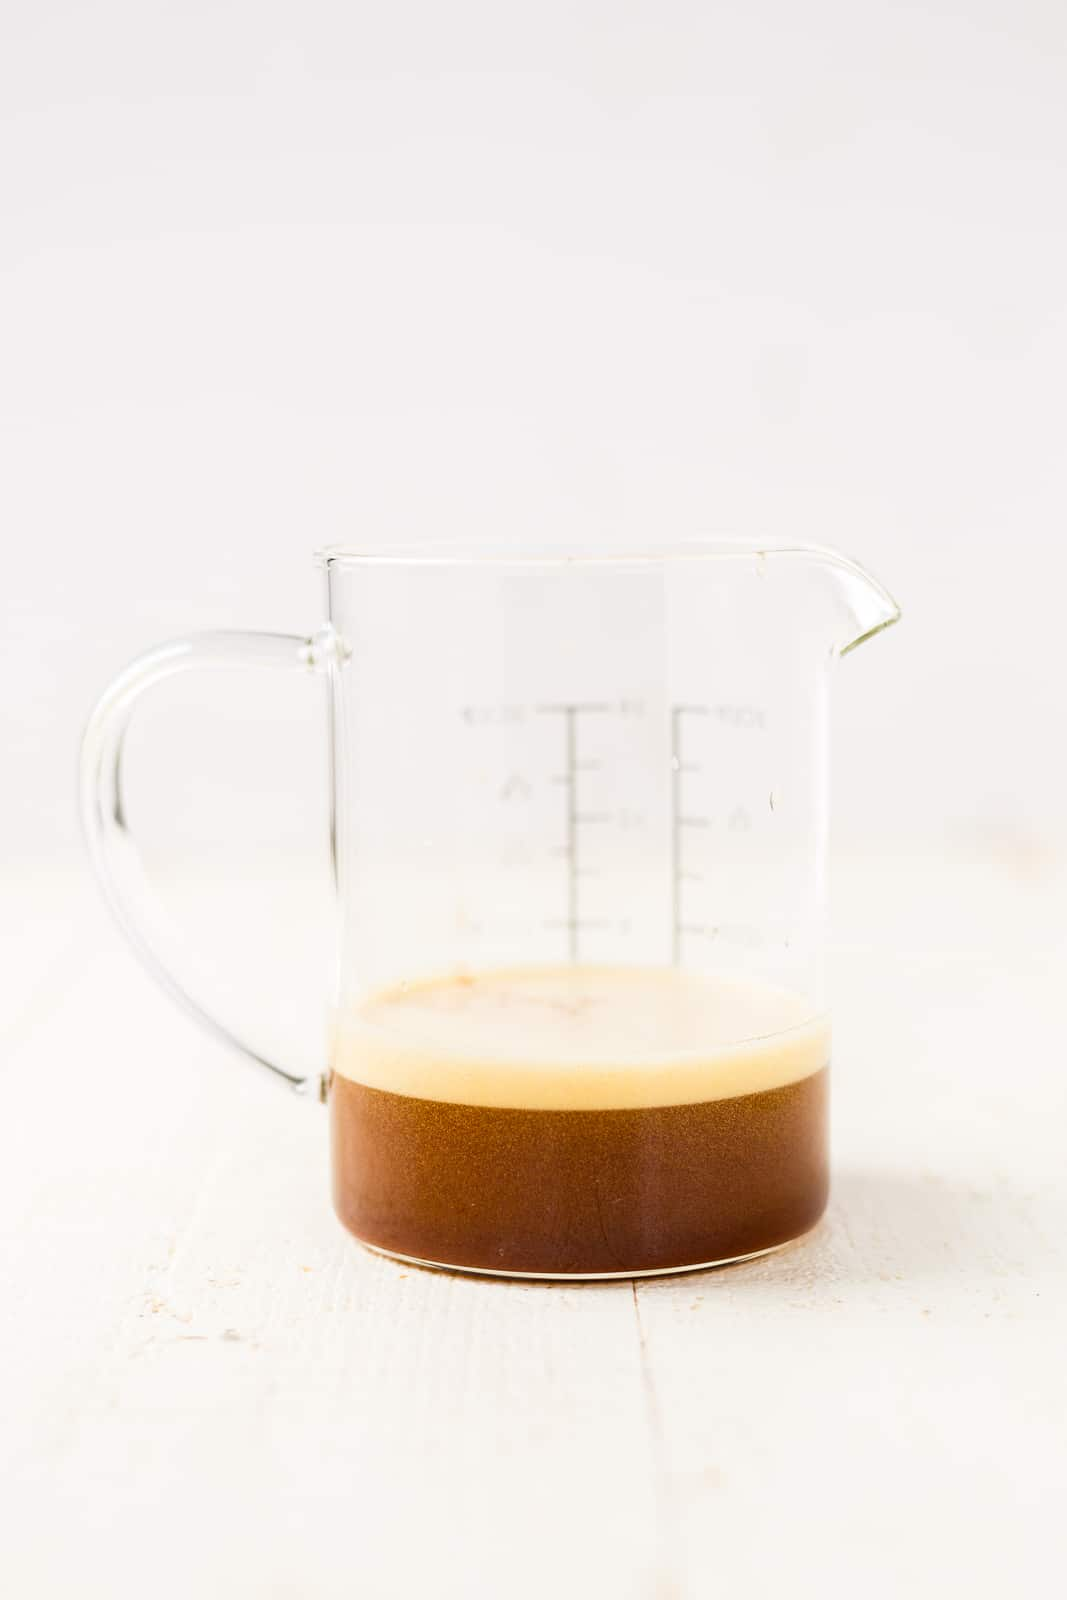 brown butter in a measuring cup before being added to cookies